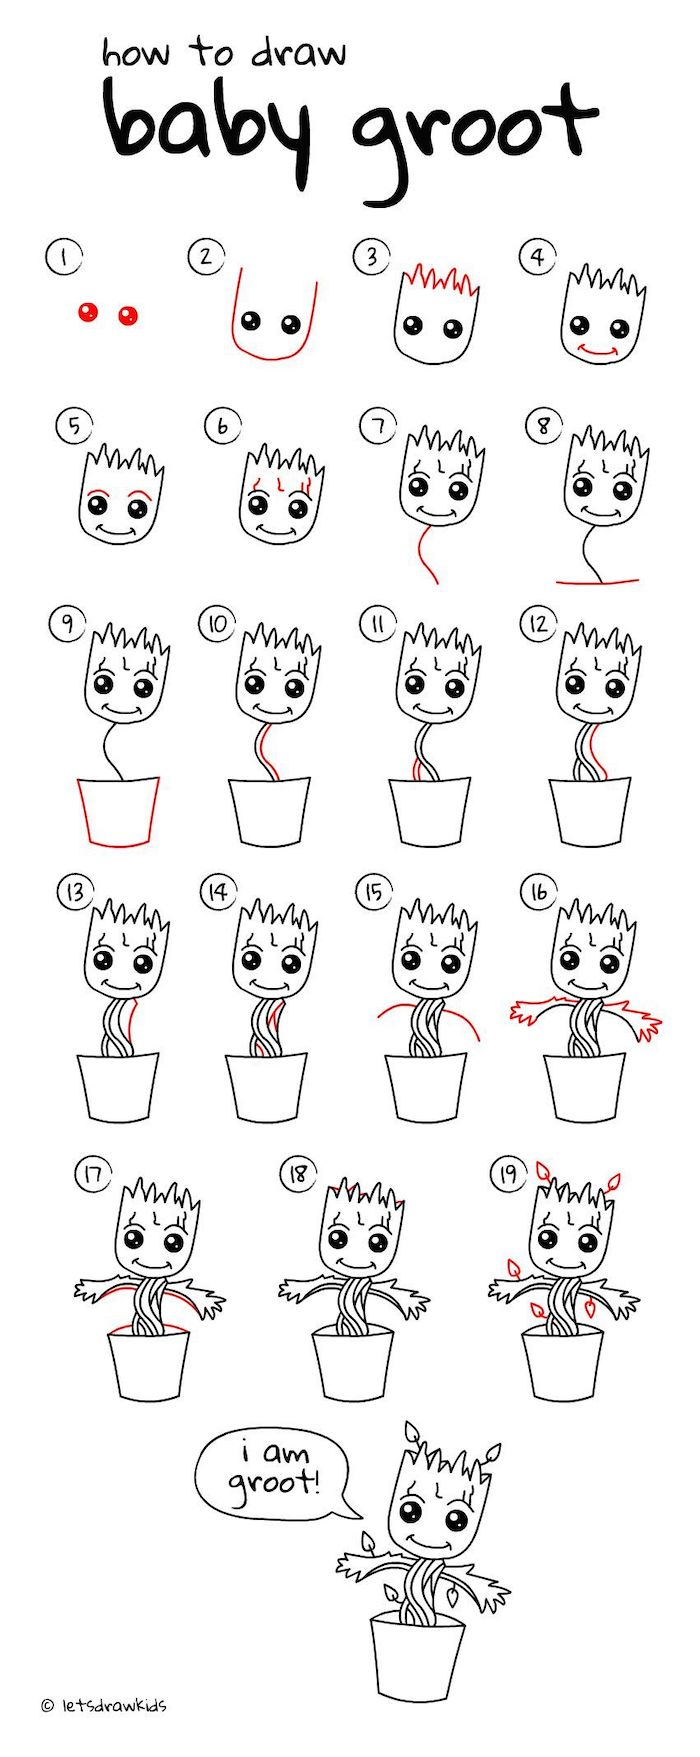 Drawing Ideas For Kids Age 12 : drawing, ideas, 1001+, Ideas, Drawings, Develop, Their, Creativity